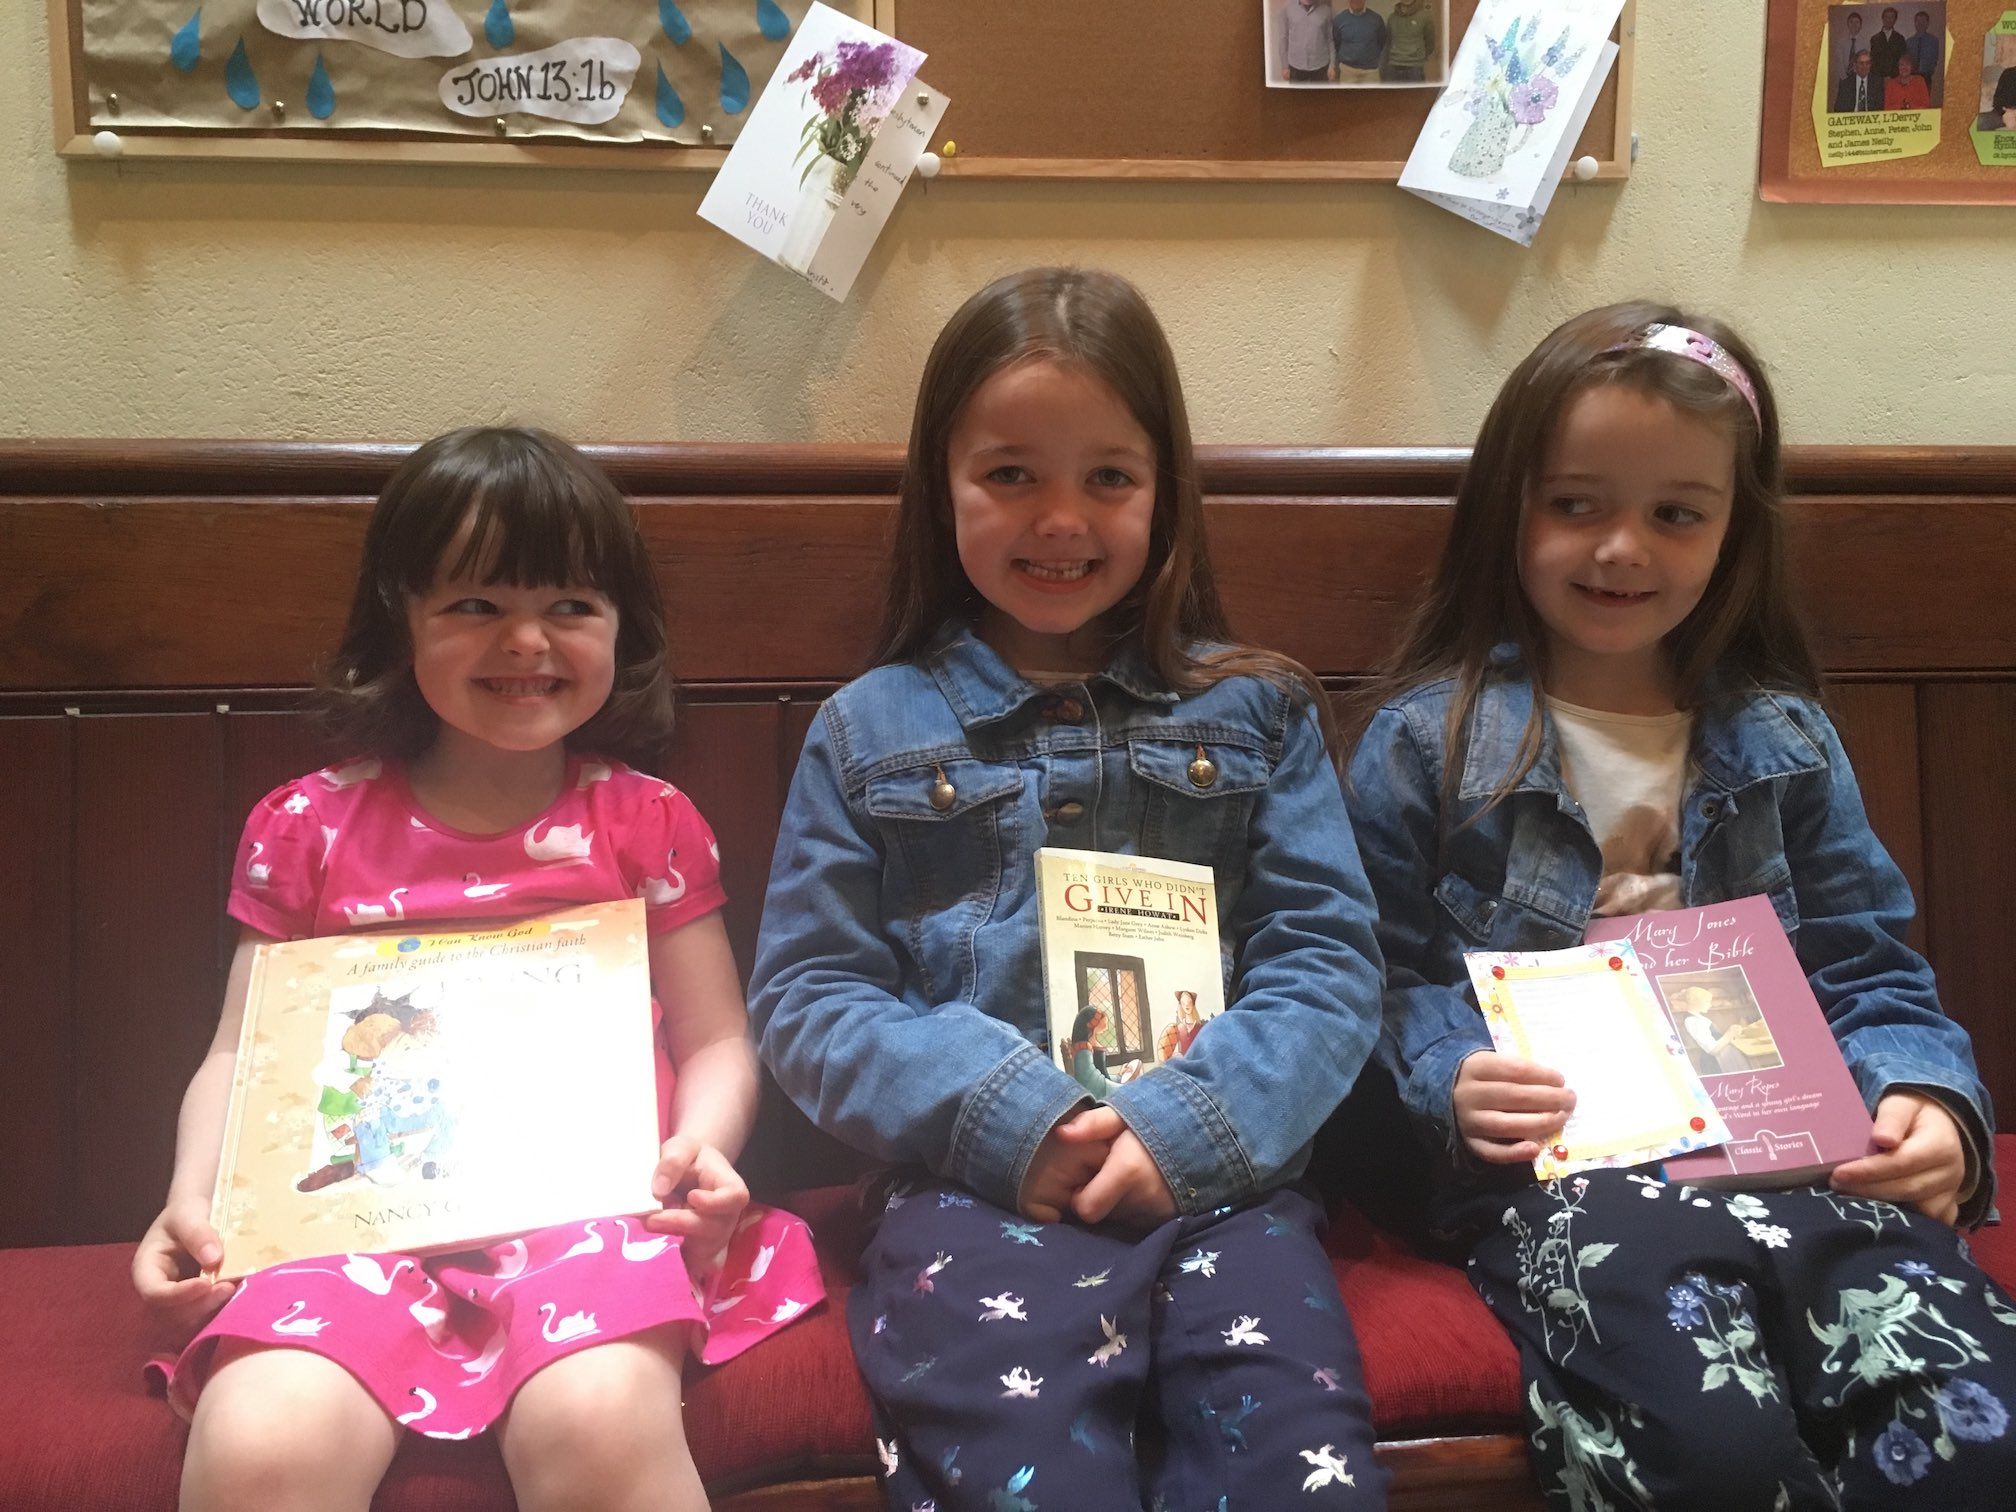 Some of the girls from our Sunday School with their books.